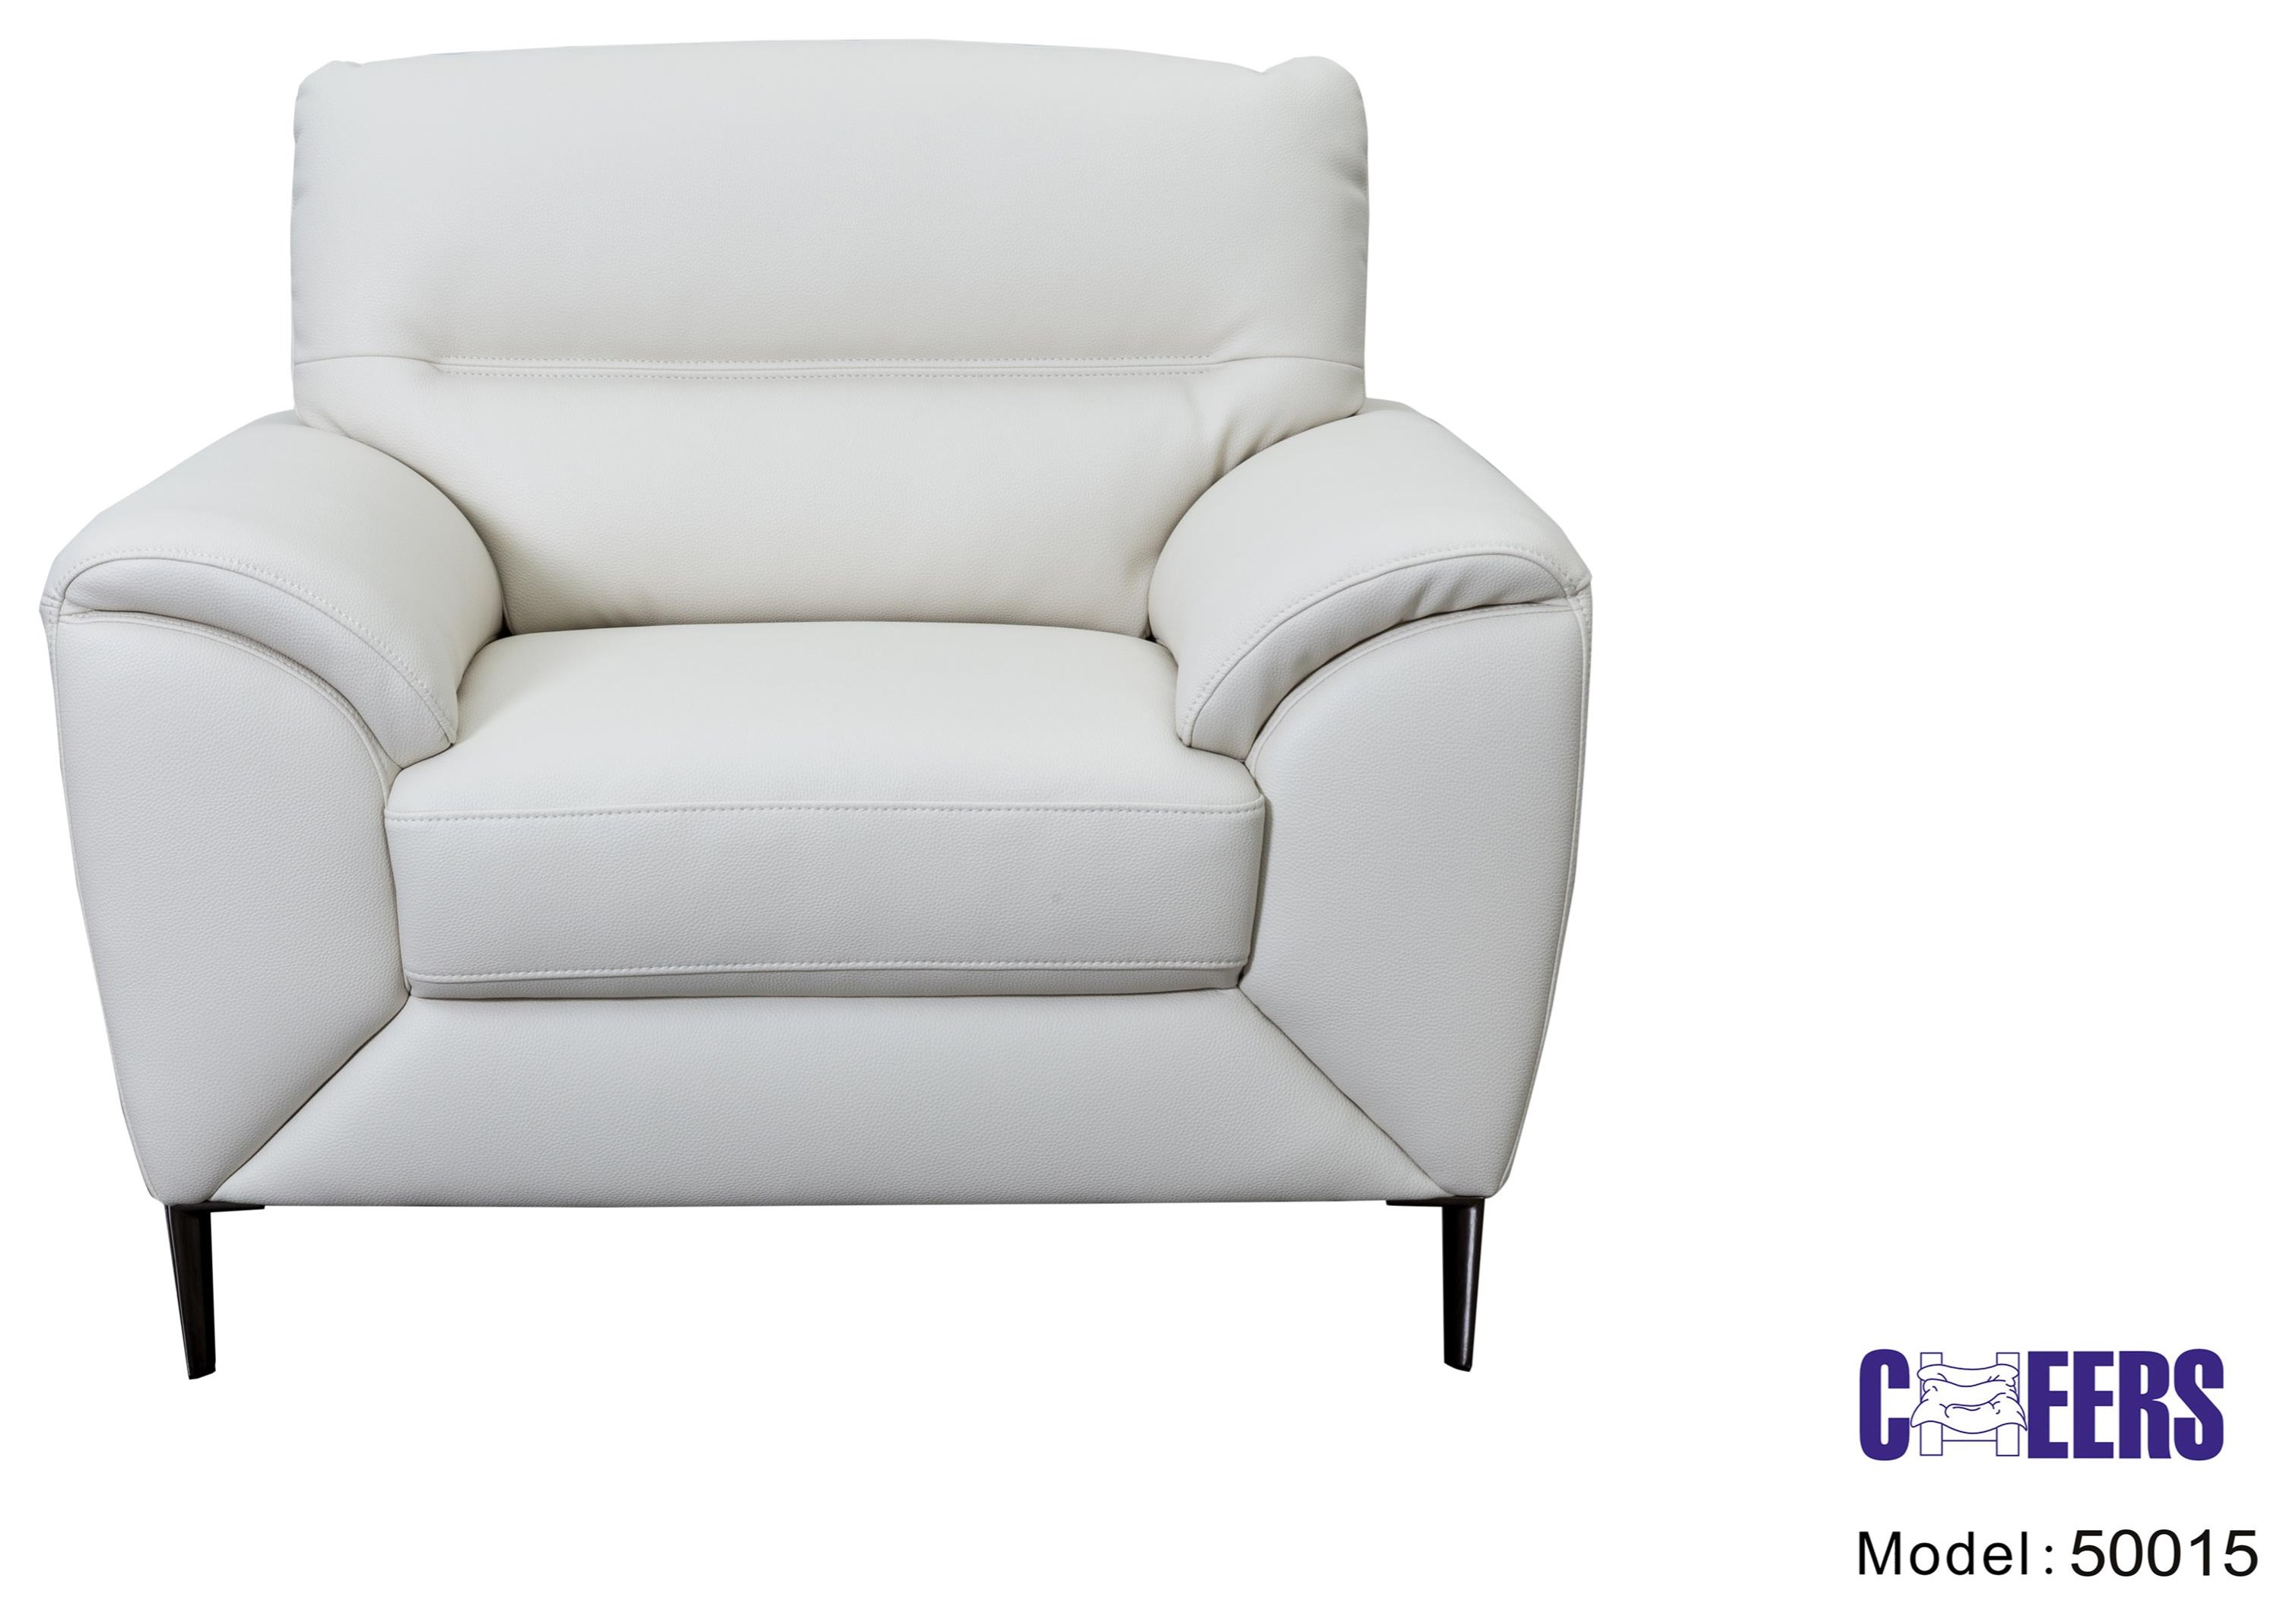 50015 Chair by Cheers at Westrich Furniture & Appliances